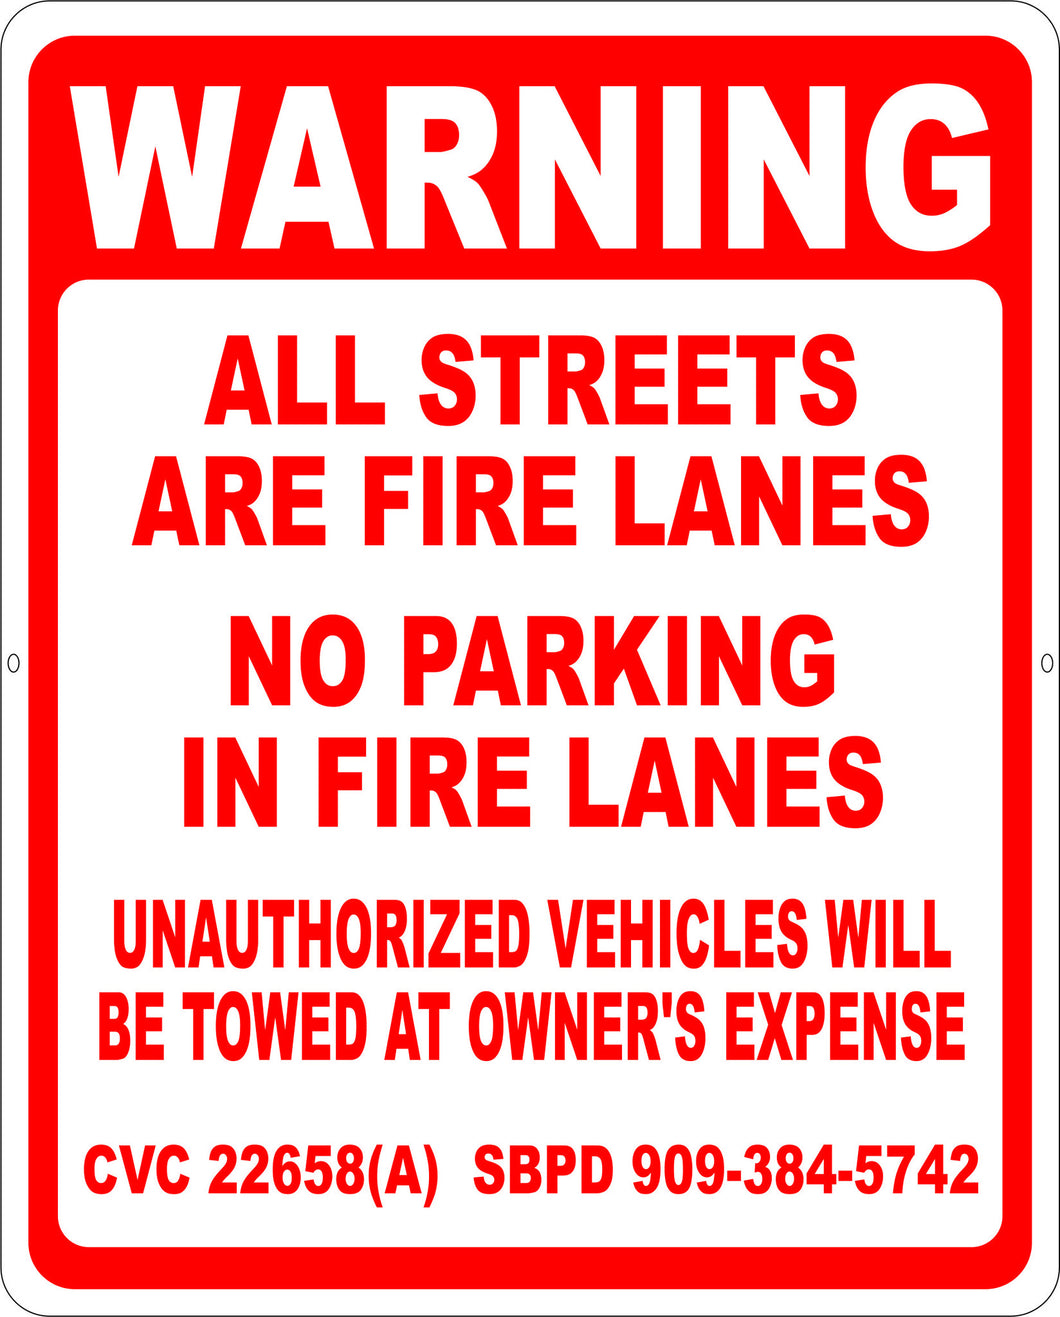 Warning All Streets are Fire Lanes Do Not Park in Fire Lanes Sign - Signs & Decals by SalaGraphics